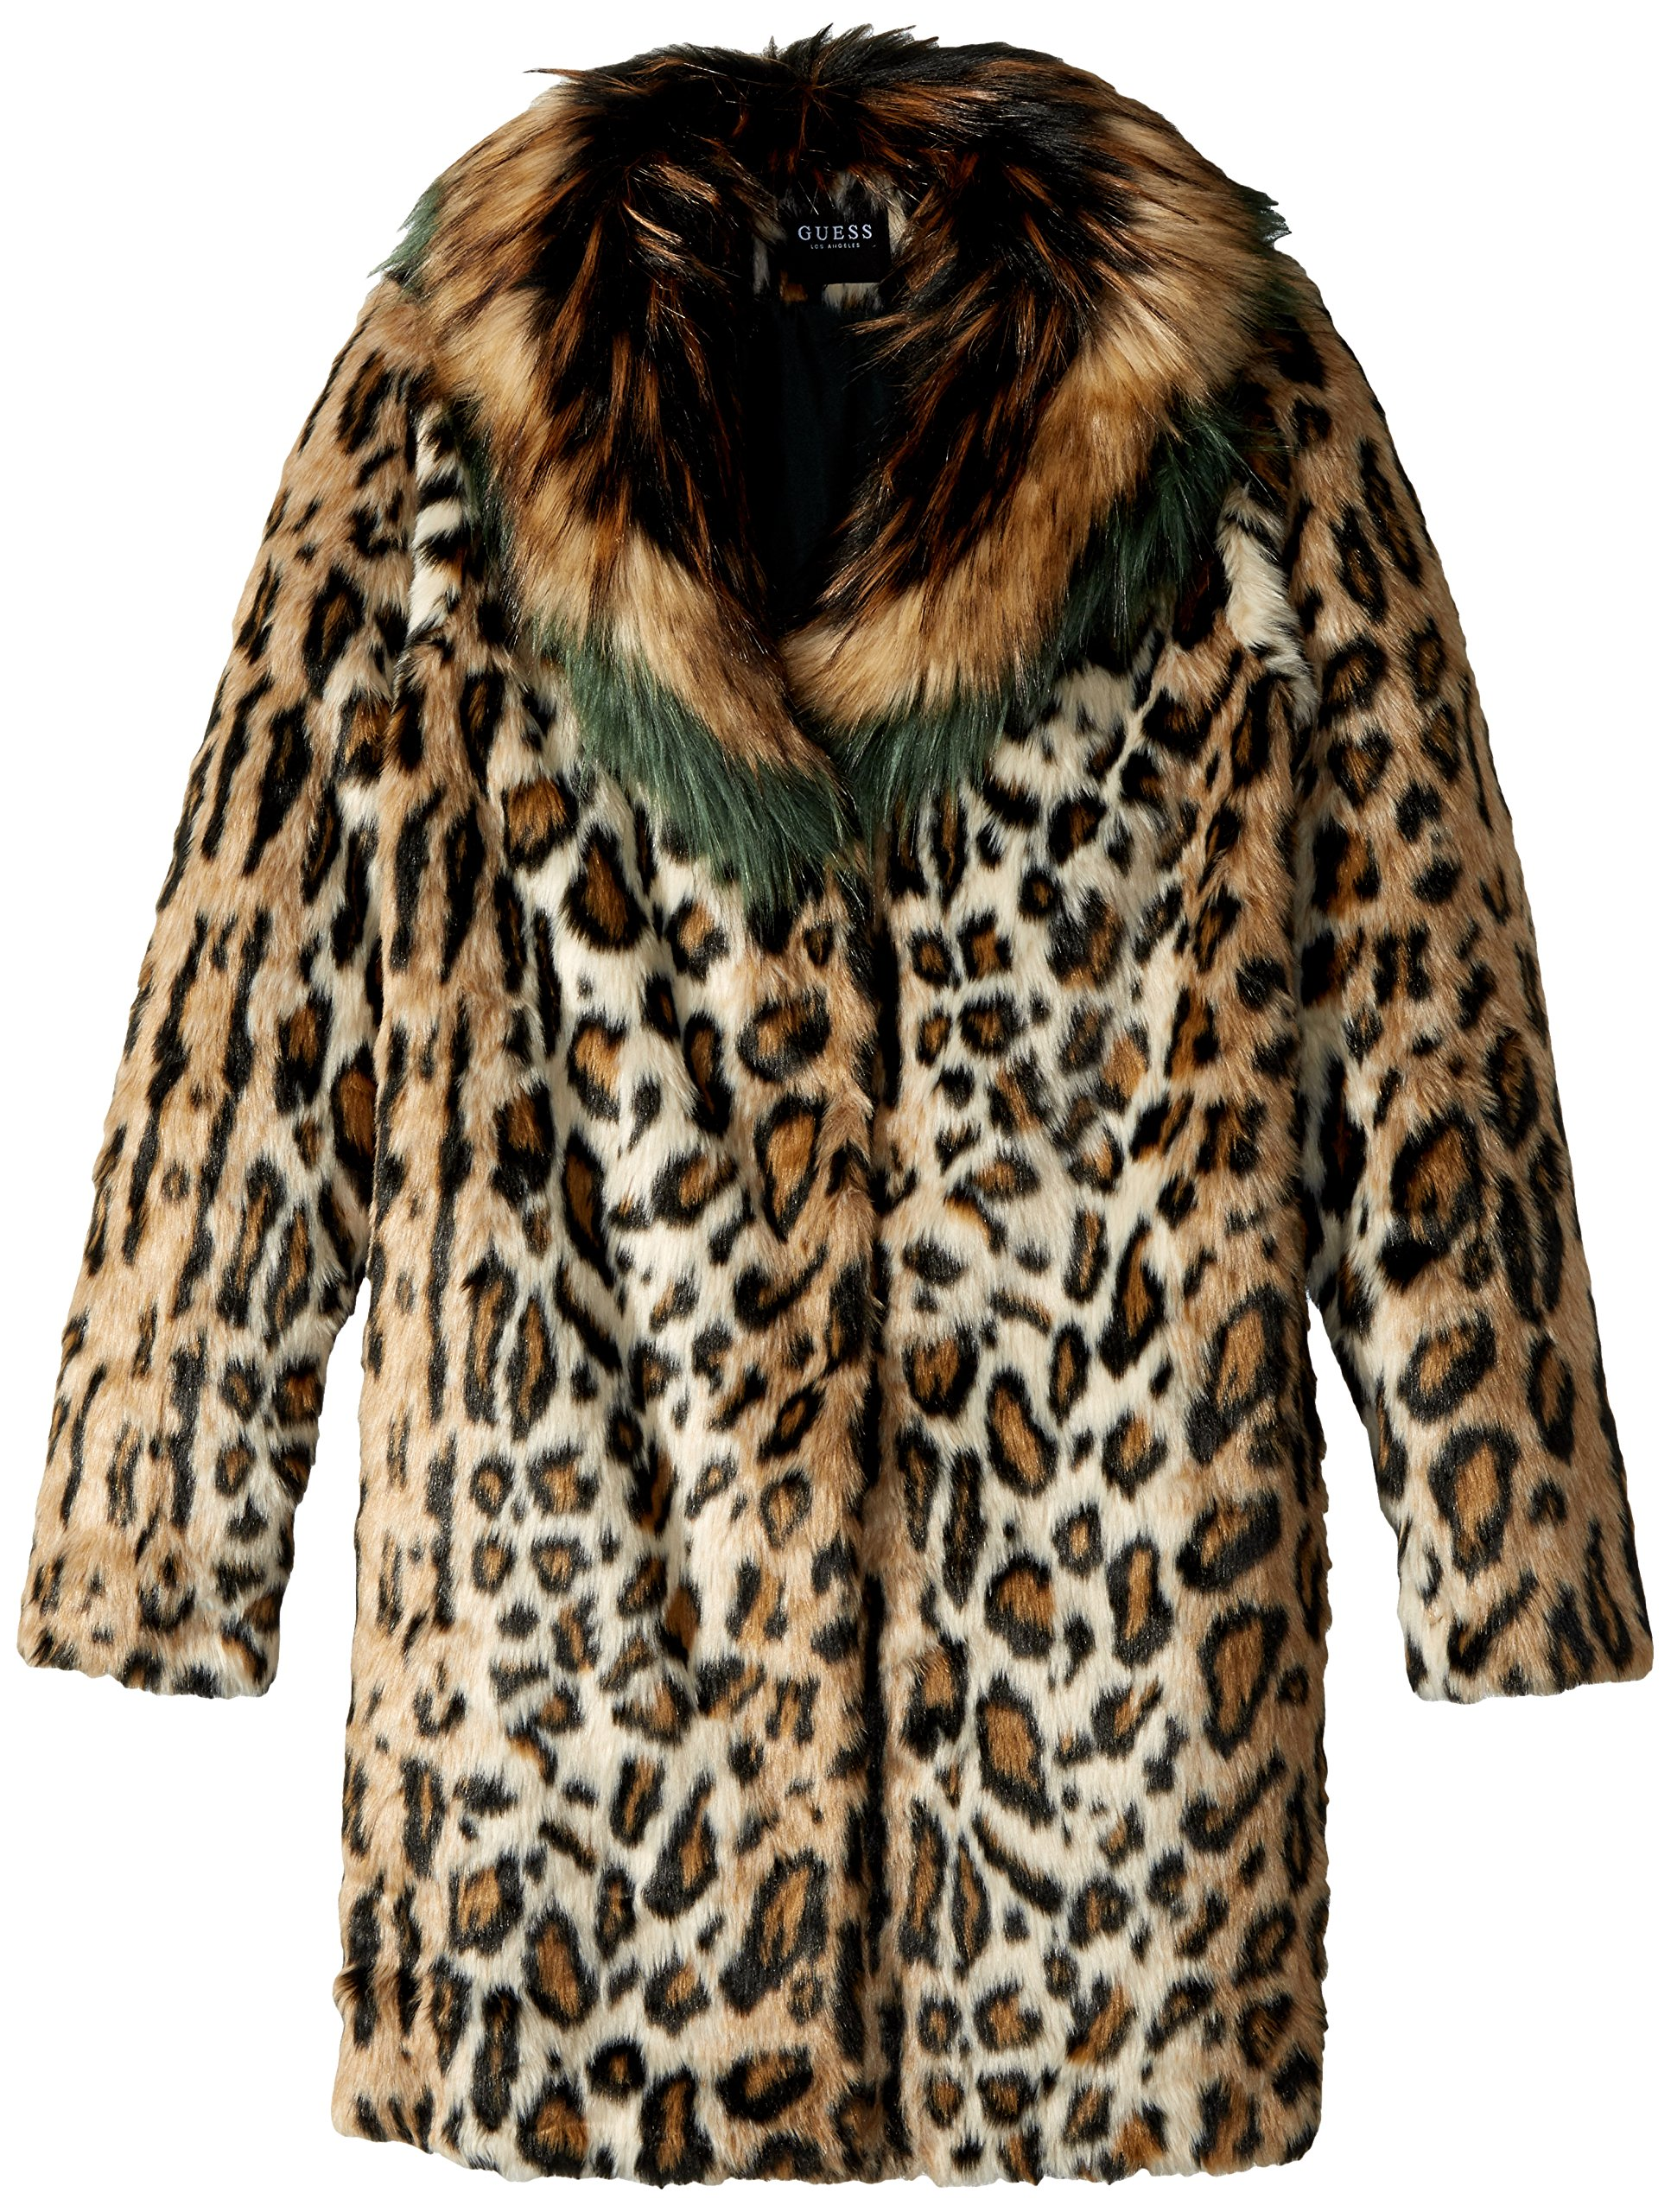 GUESS Big Girls' Faux-Fur Coat, Leo Beige Combo, 16